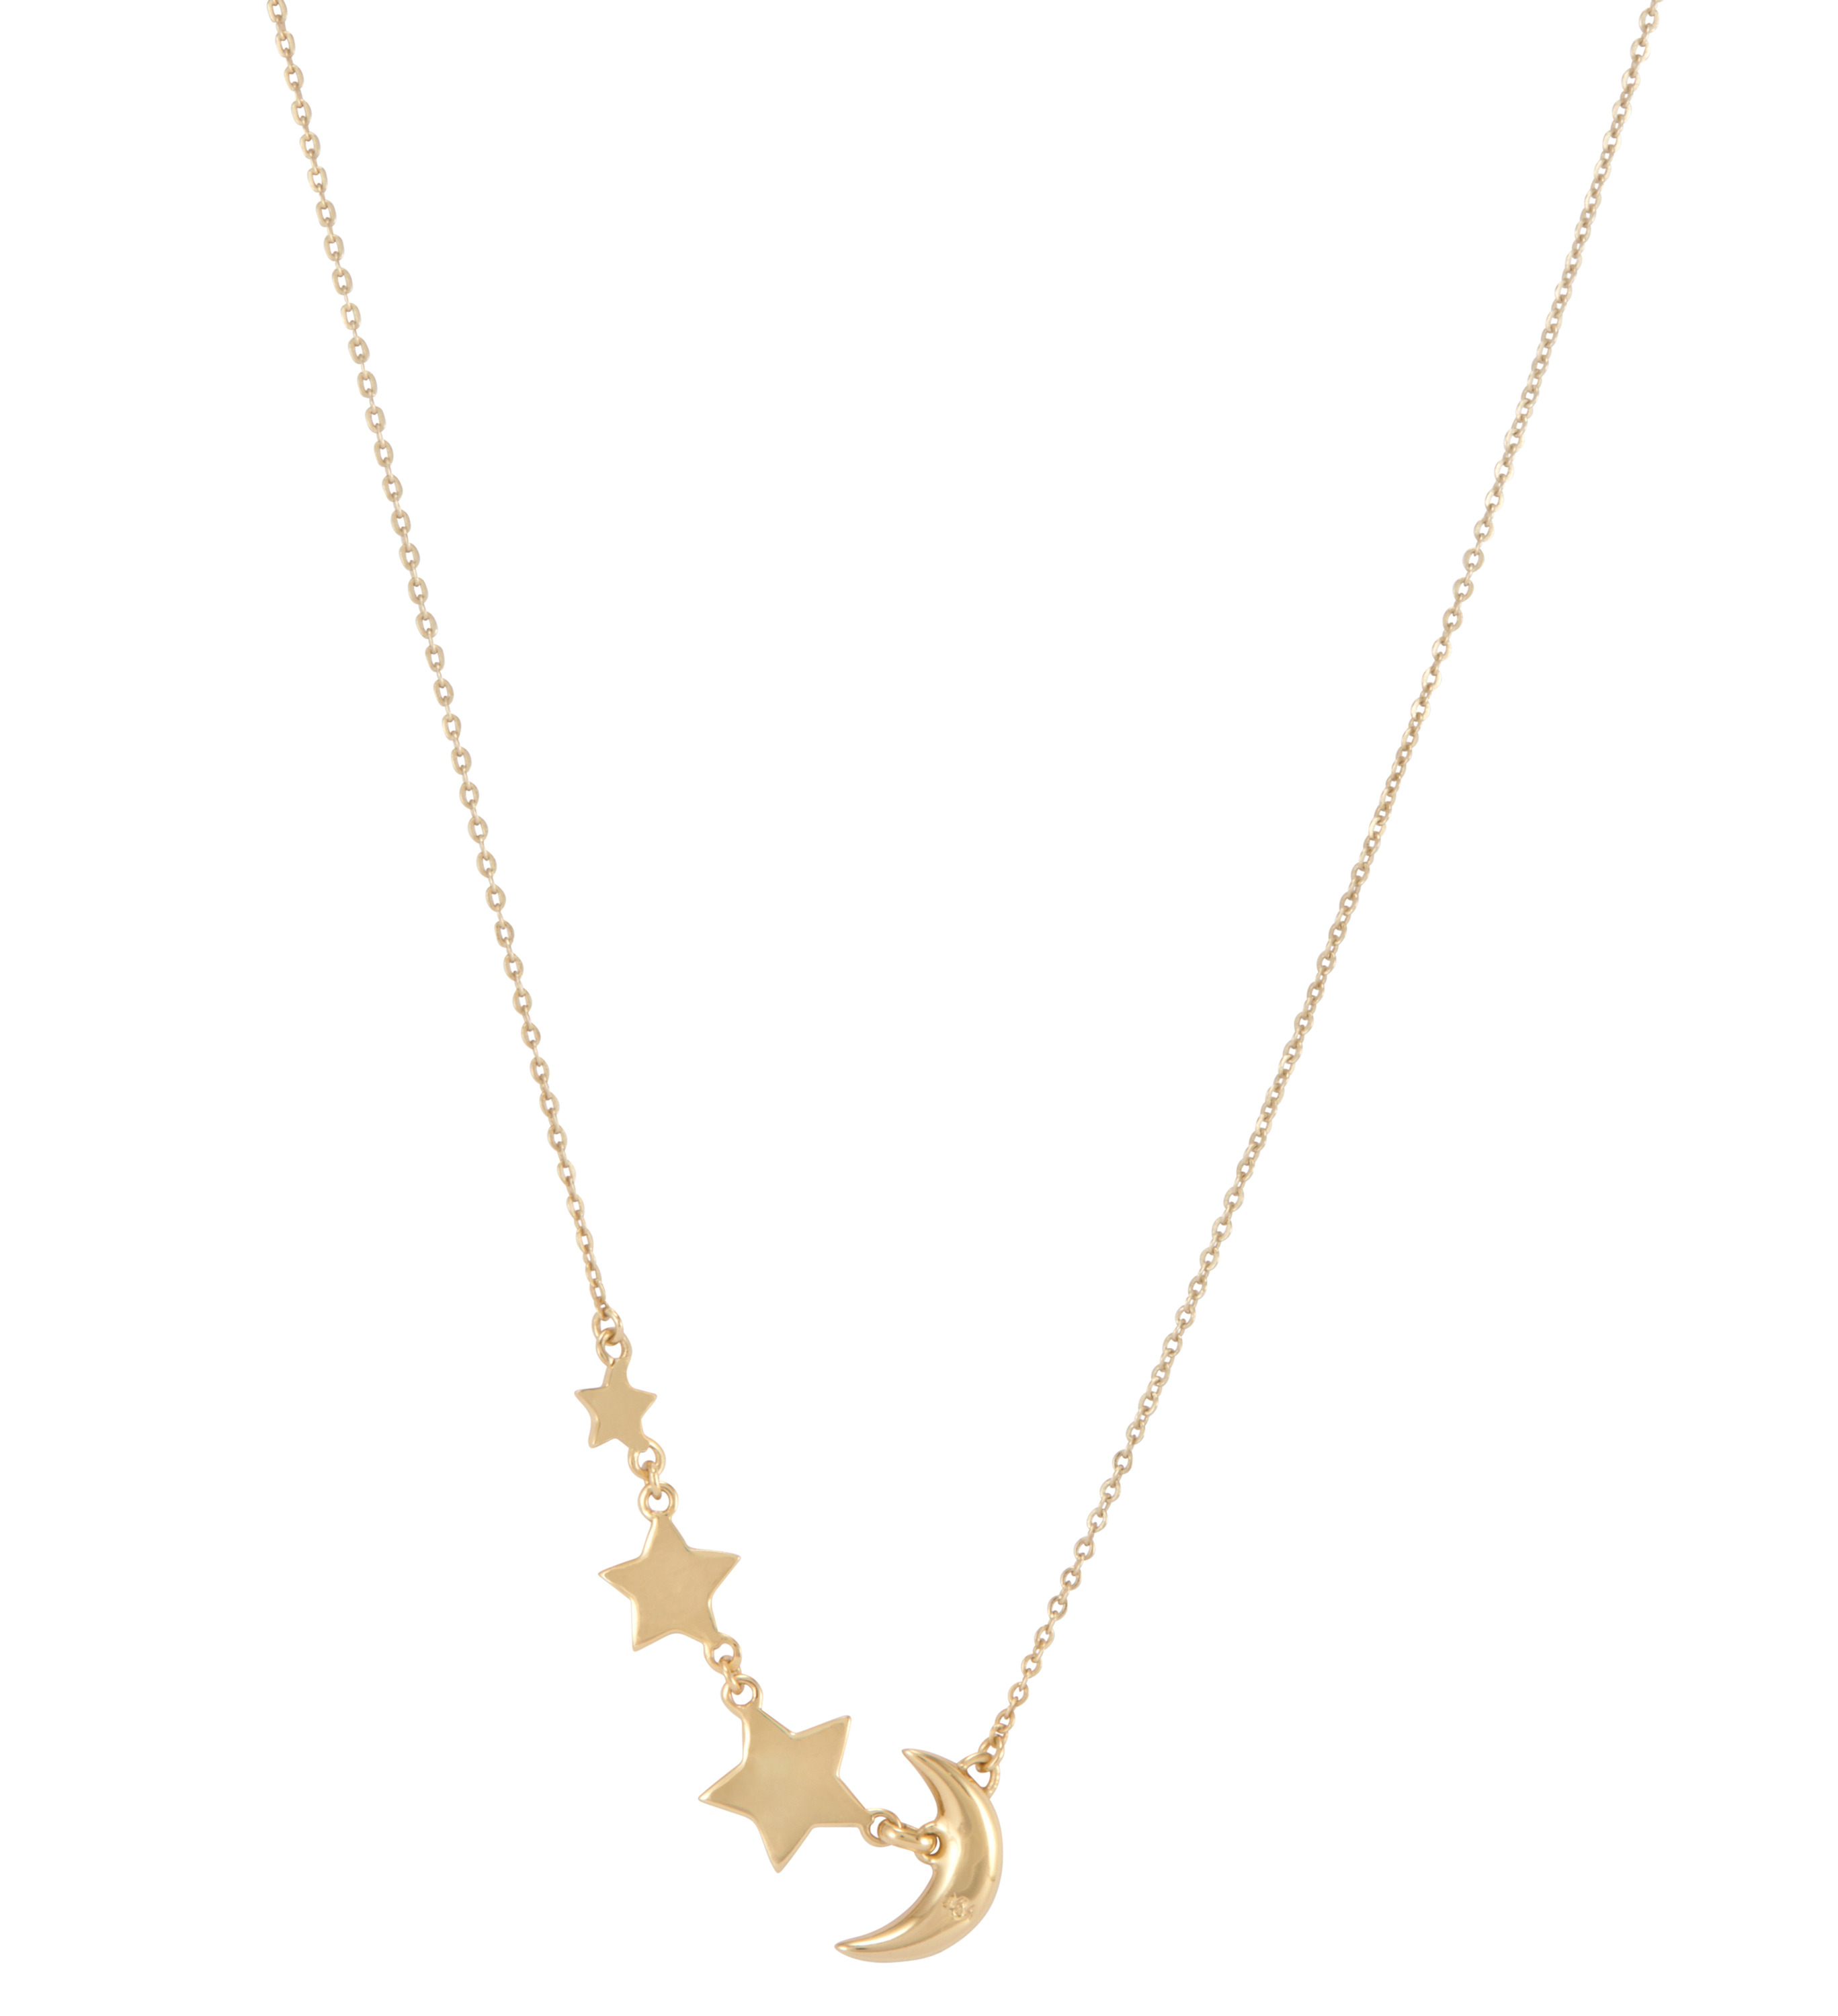 Melinda Maria moon and stars necklace | JCK On Your Market